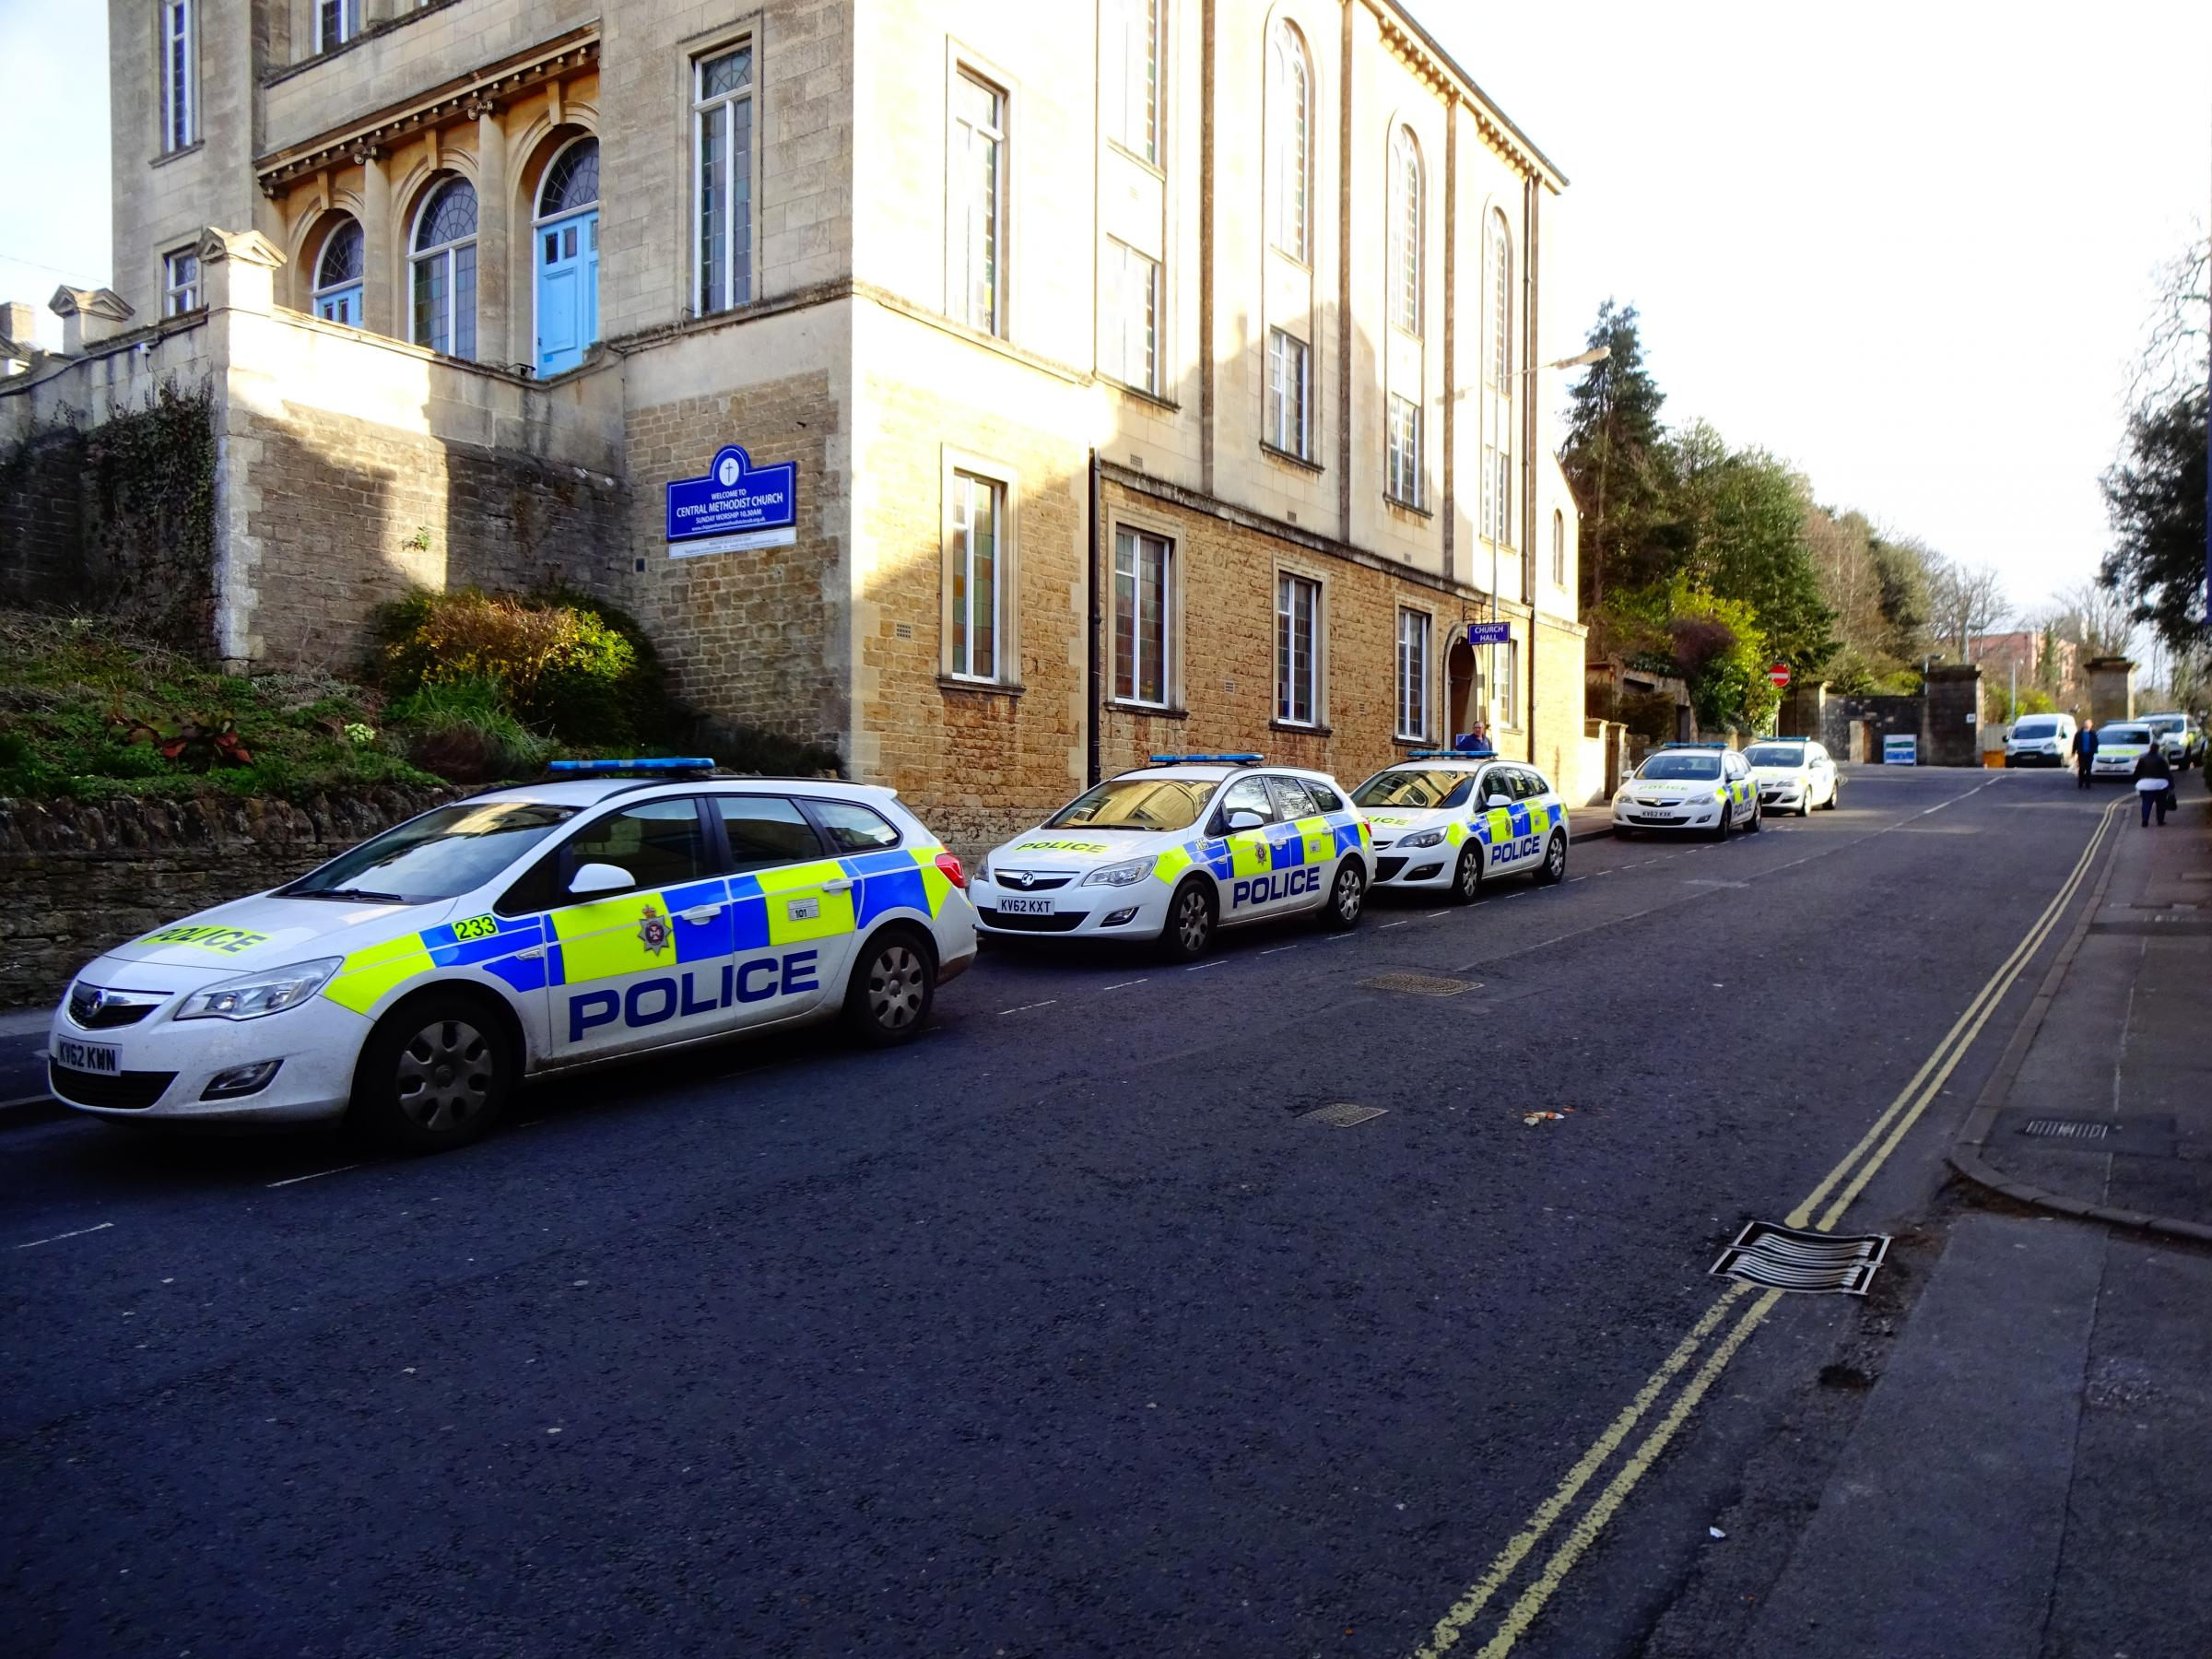 Police officers are parking their cars on Monkton Hill after the car park was closed. Photo: Councillor Nick Murry.